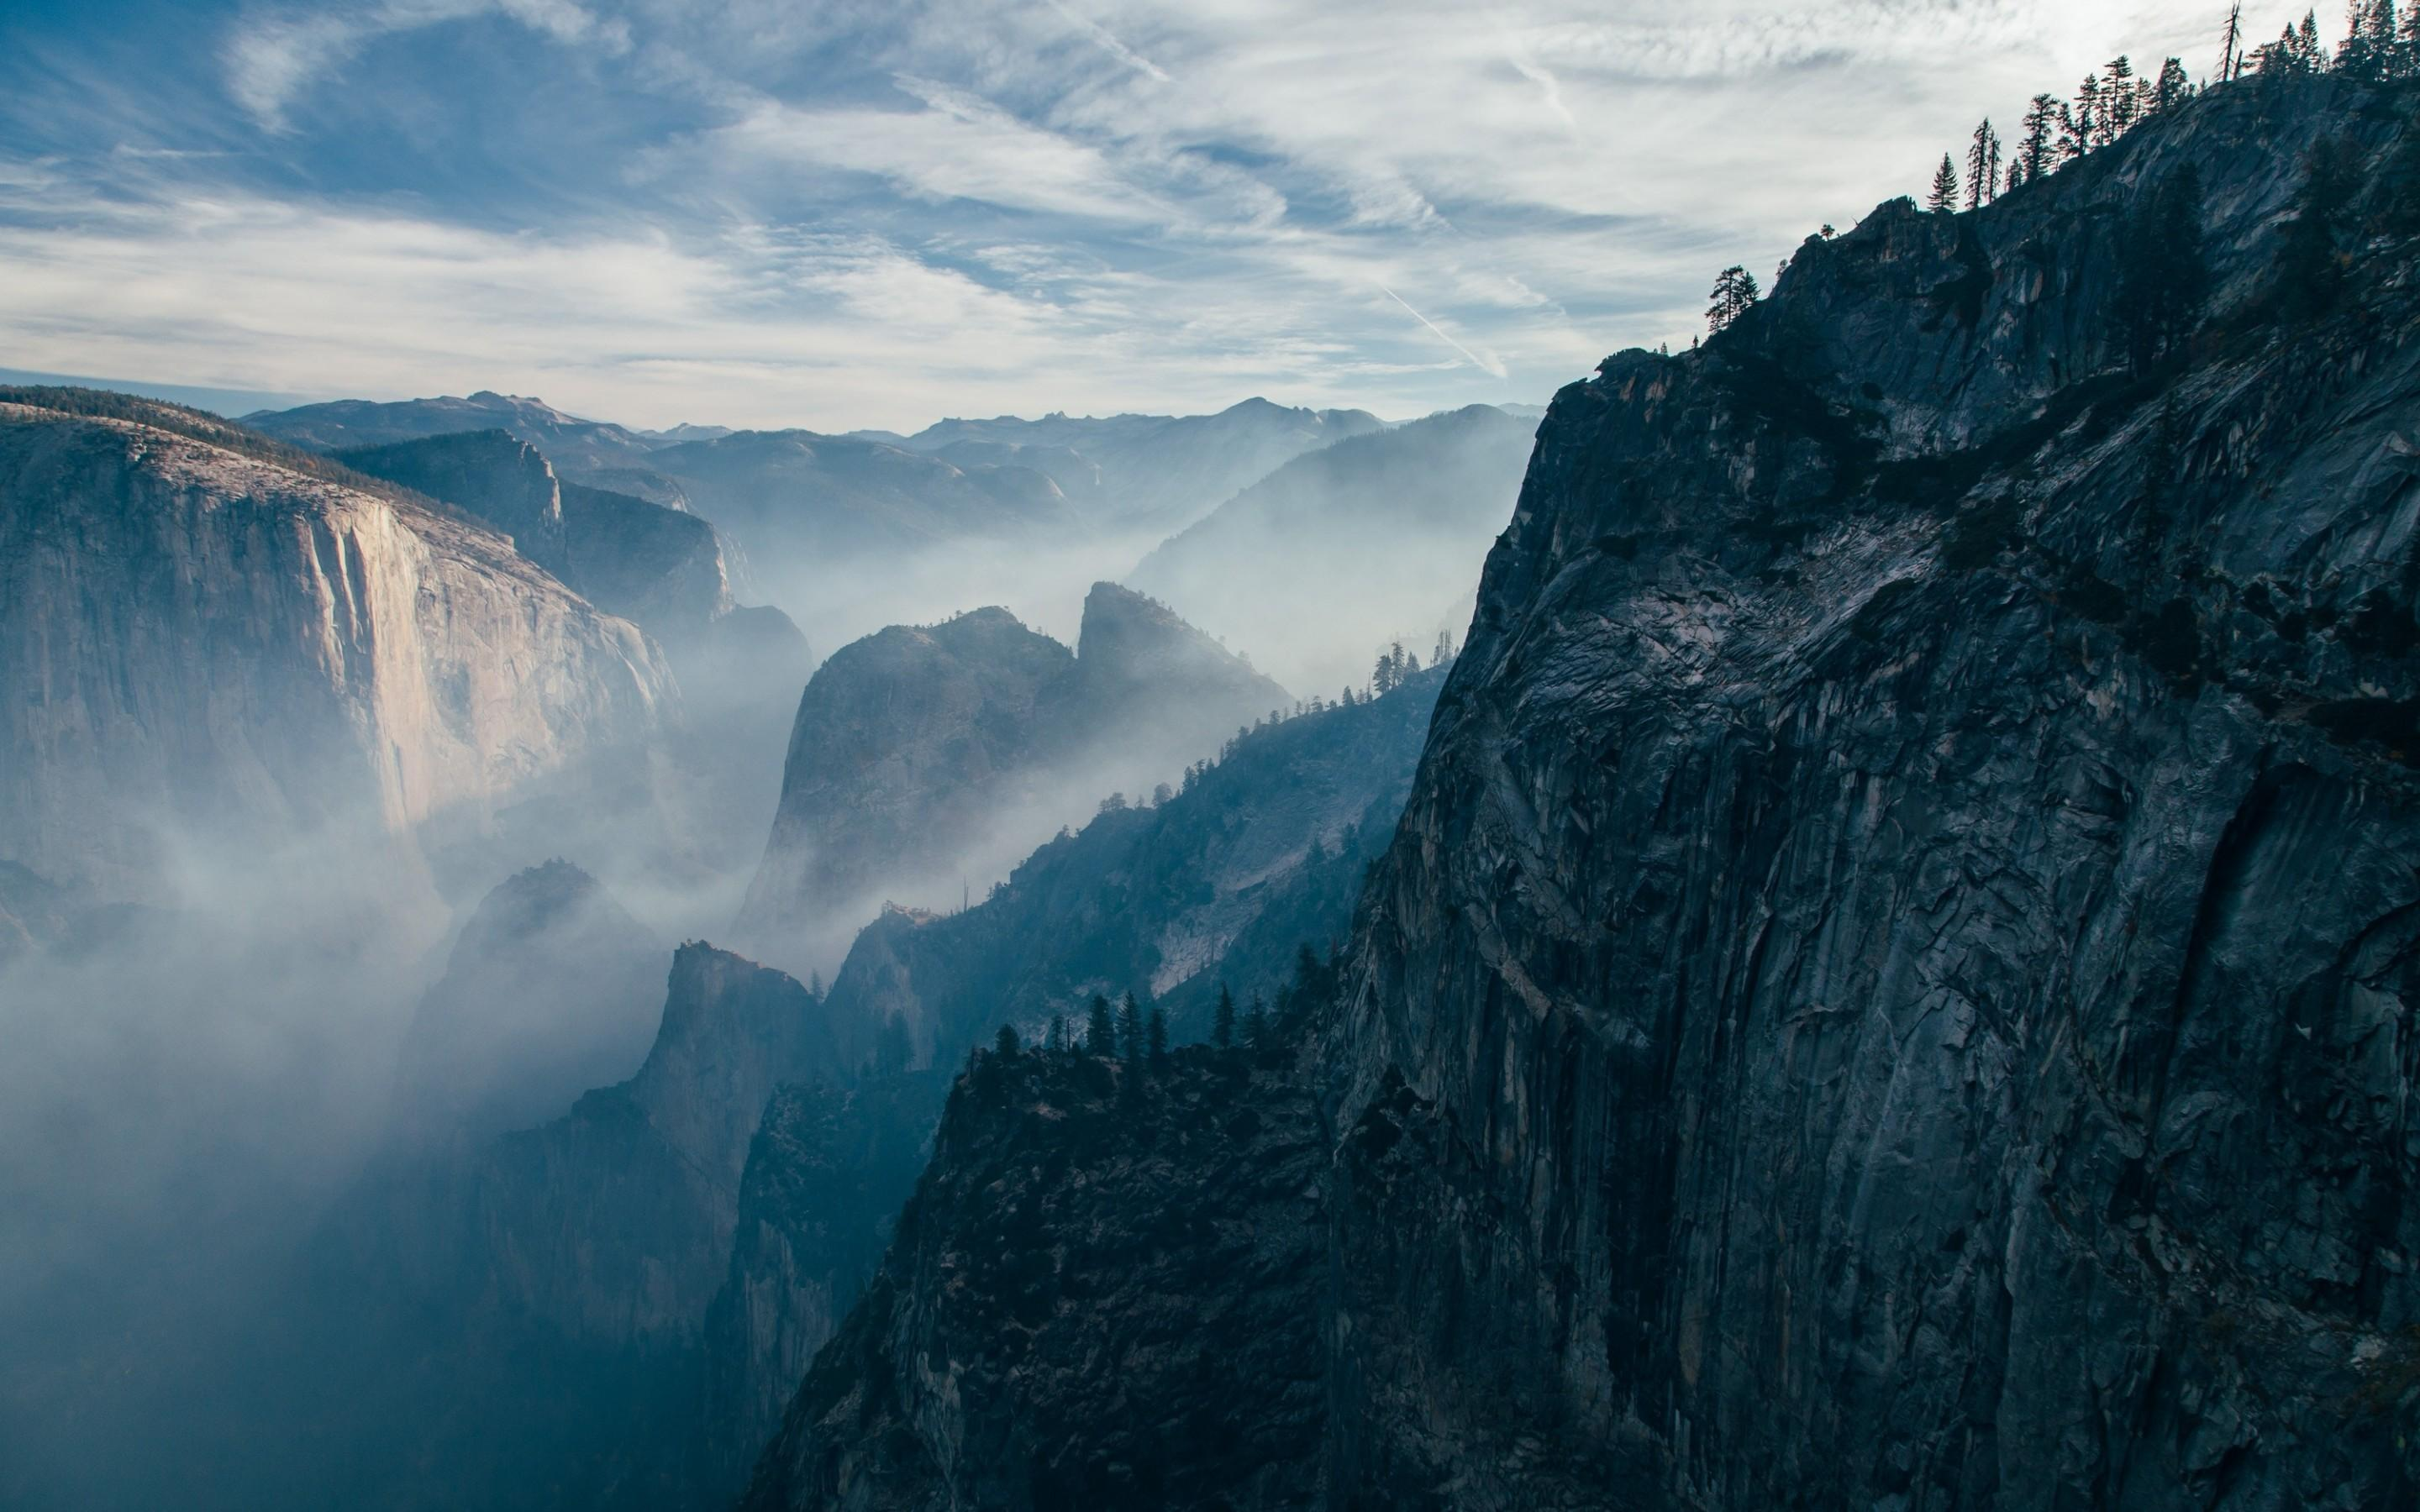 Download 2880x1800 Mountains, Cliff, Sky, Mist Wallpapers for ...